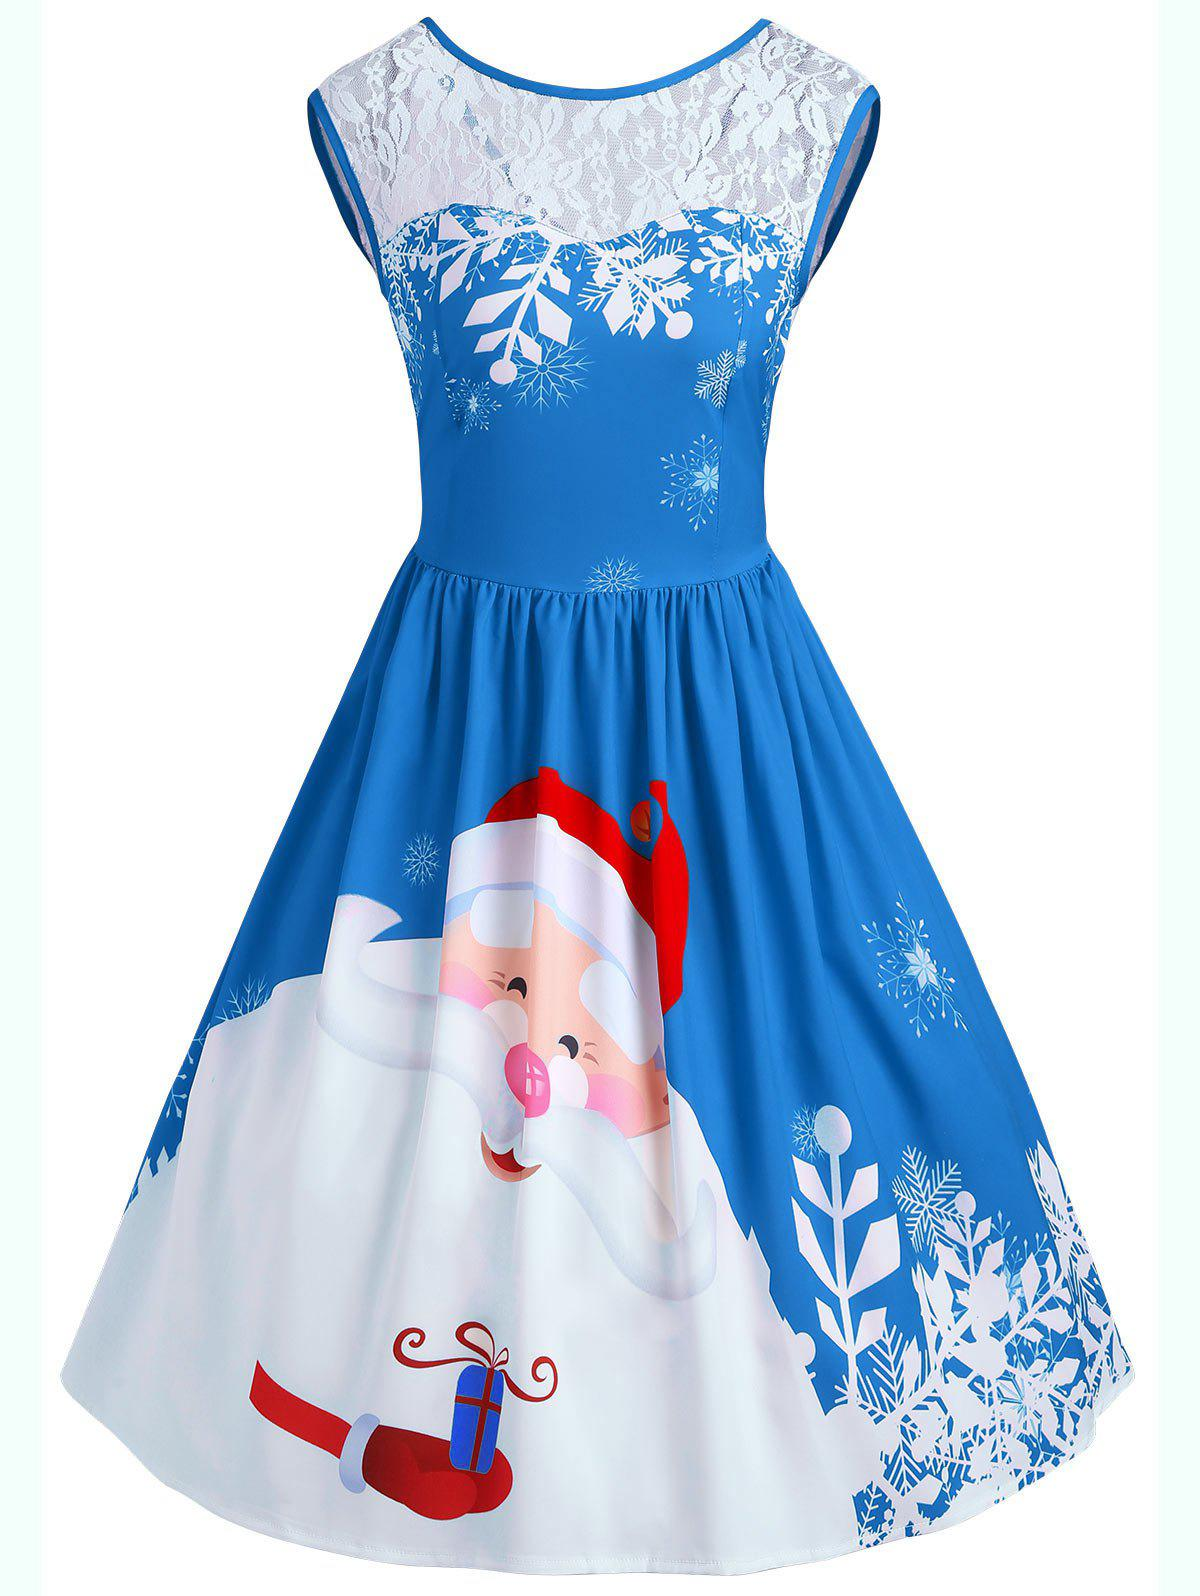 Christmas Santa Claus Print Lace Insert Party DressWOMEN<br><br>Size: L; Color: BLUE; Style: Vintage; Material: Polyester,Spandex; Silhouette: A-Line; Dresses Length: Knee-Length; Neckline: Round Collar; Sleeve Length: Sleeveless; Pattern Type: Patchwork,Print; With Belt: No; Season: Fall,Spring; Weight: 0.3500kg; Package Contents: 1 x Dress;